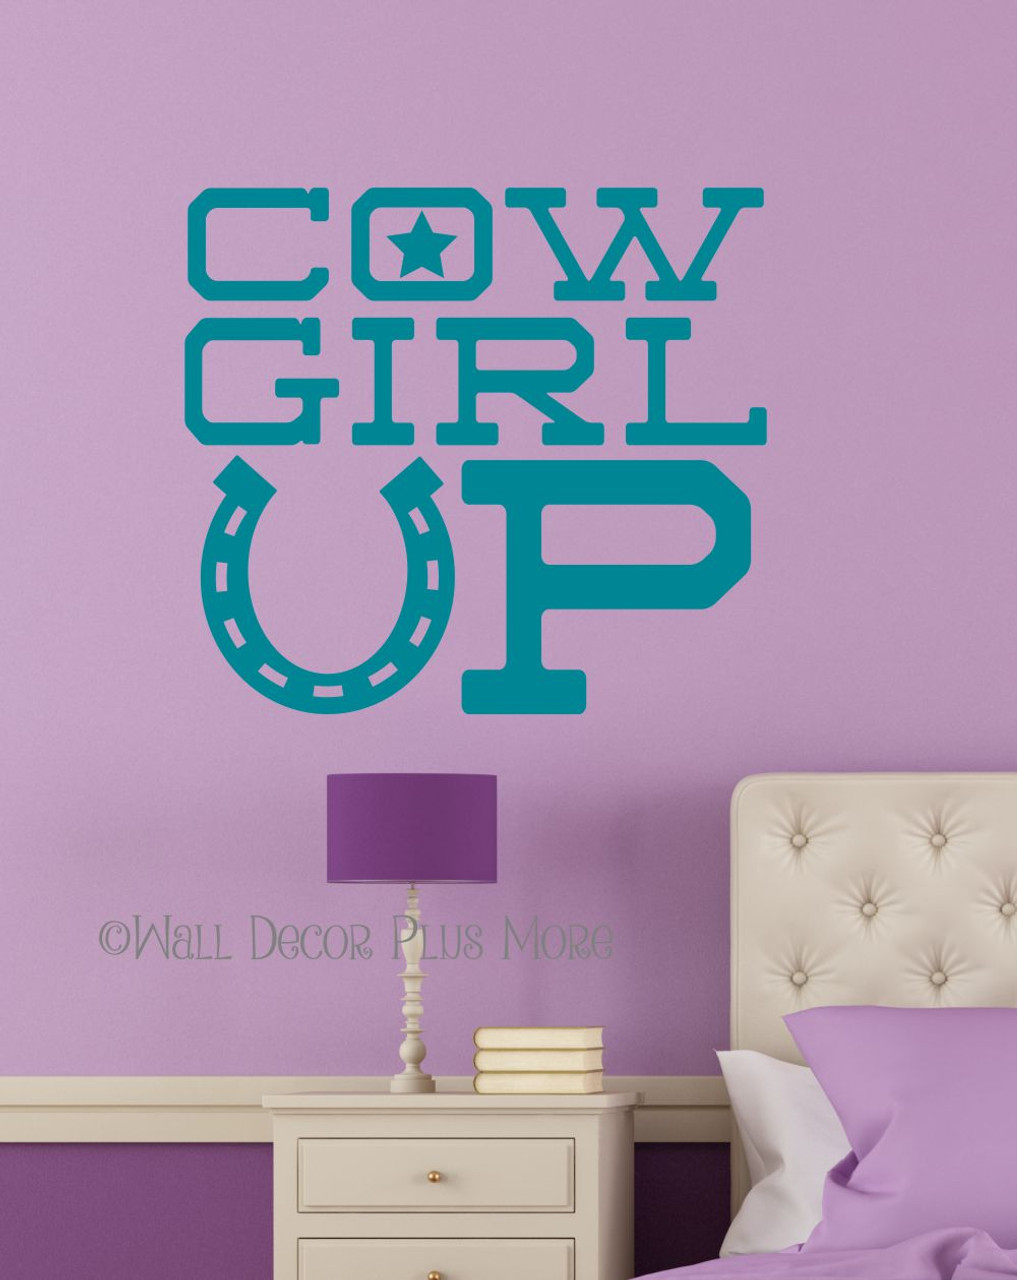 Cowgirl Up Western Wall Decals Vinyl Stickers Lettering for Girls Room